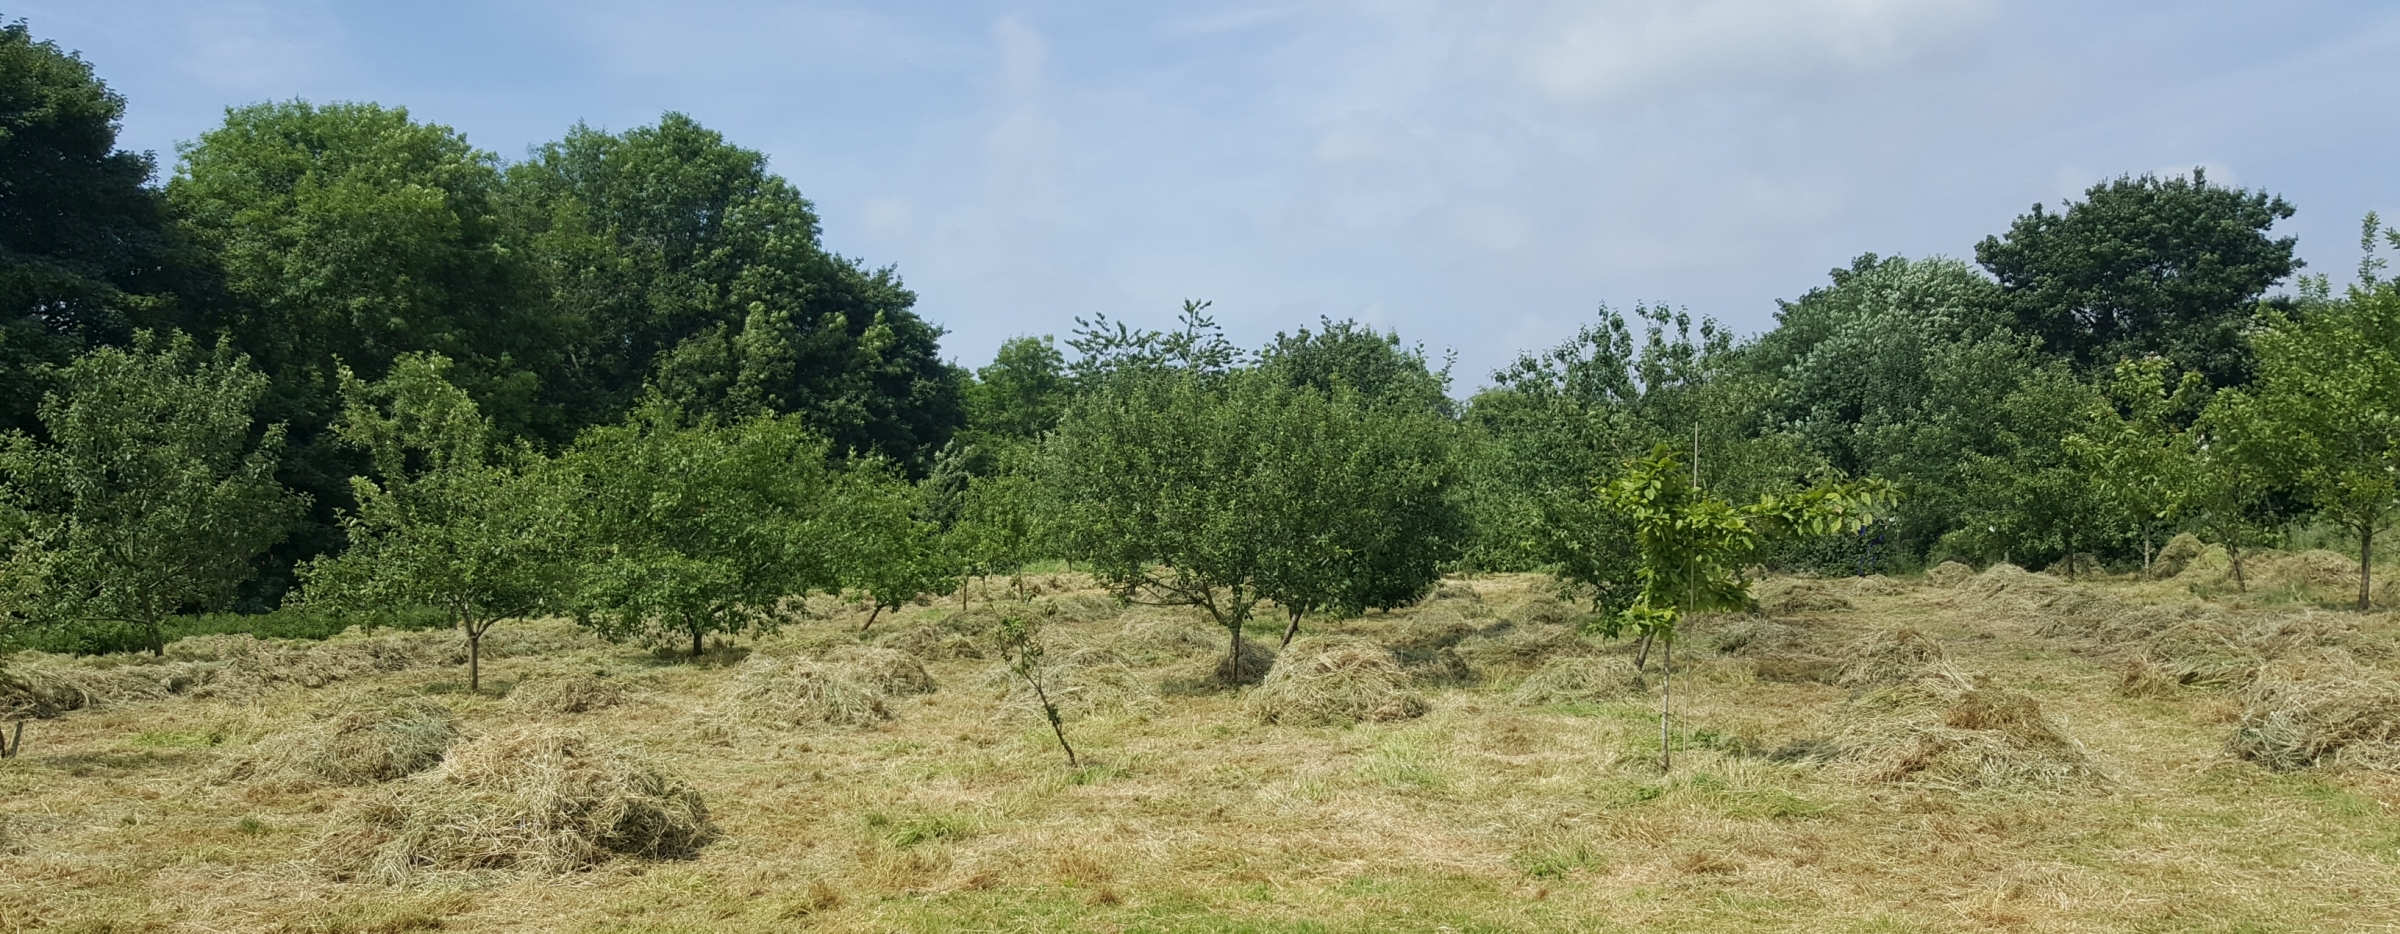 The orchard at Forest Farm